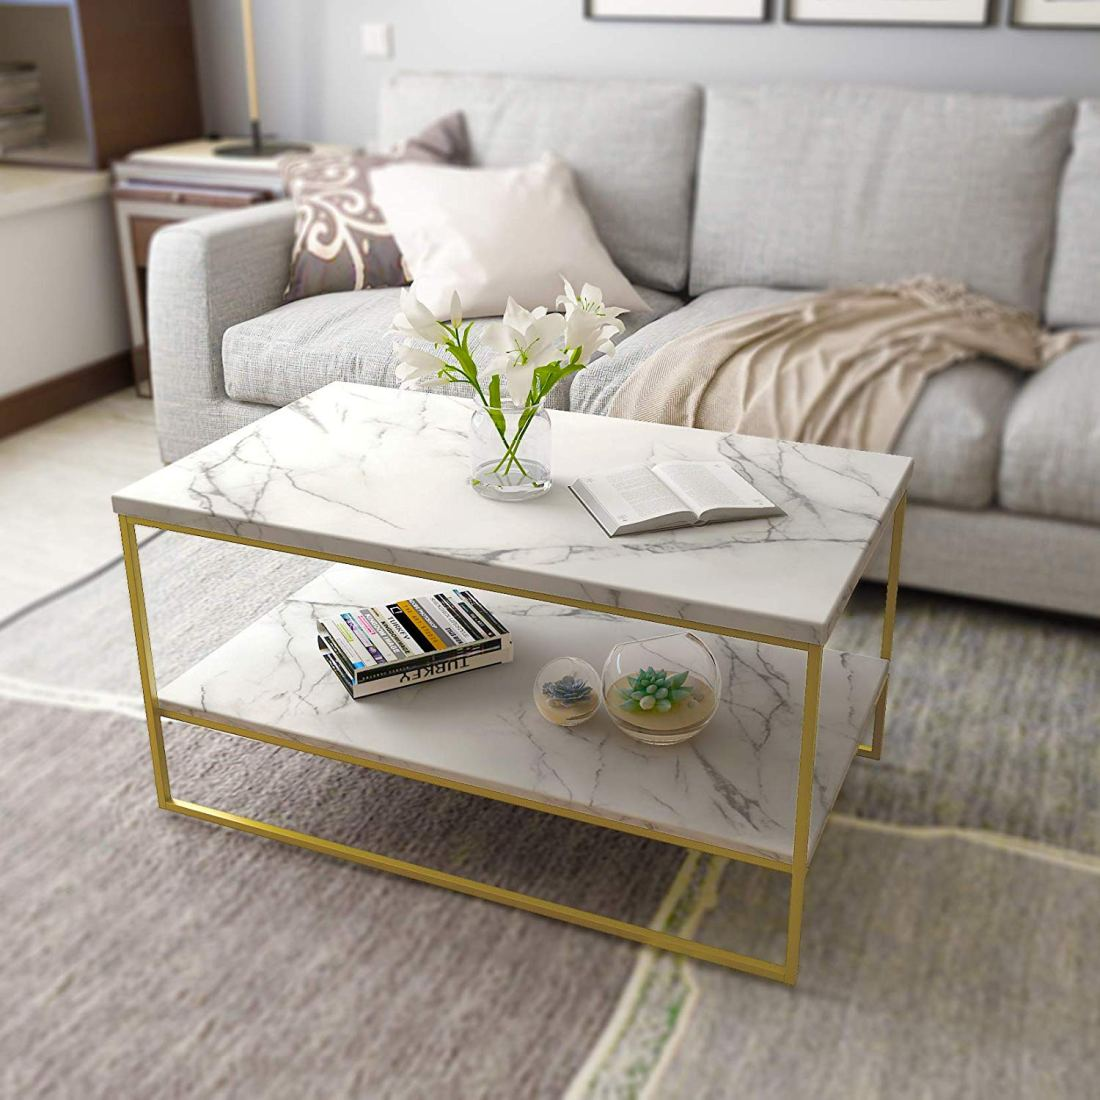 These glam, affordable furniture items from Amazon will blow you & your house guests away. They are also perfect for small spaces! From glam decor to stunning velvet chairs, you'll be shocked with how budget-friendly these things are! #furnituredesign #furnitureideas #affordablefurniture #affordablefurnitureideas #amazon #thingstobuyonamazon #budgetfriendlydecoratingideas